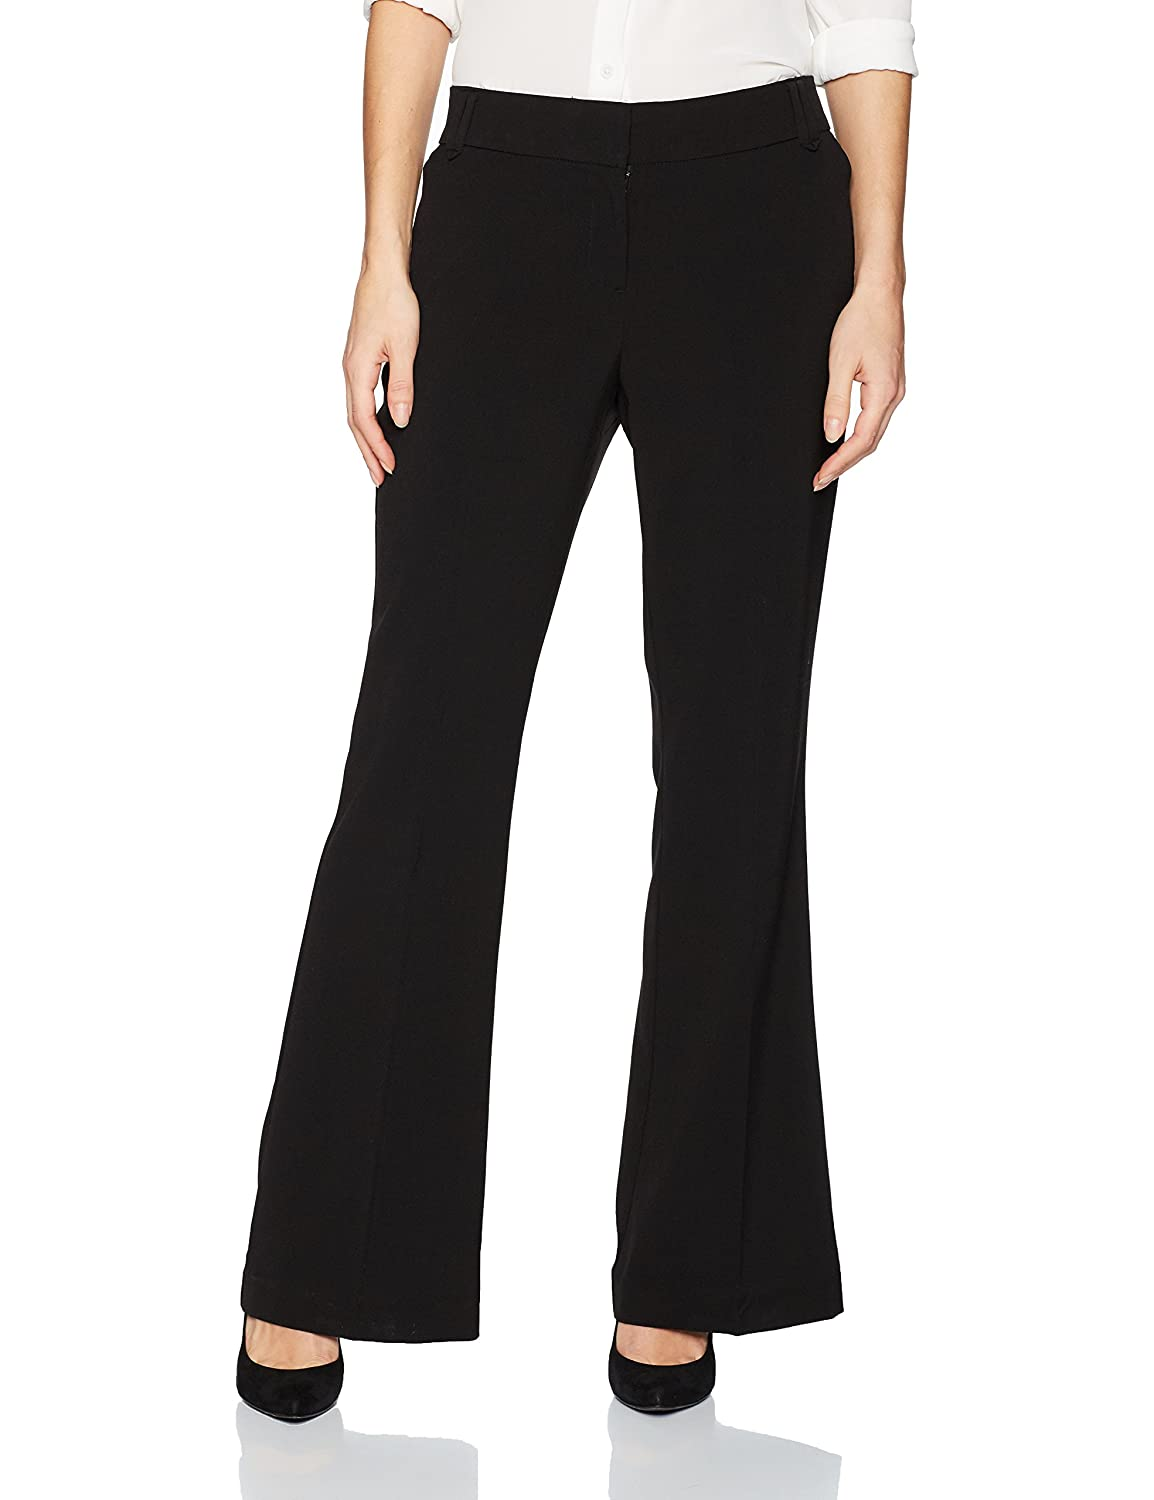 Briggs Women's New York Perfect Fit Pant